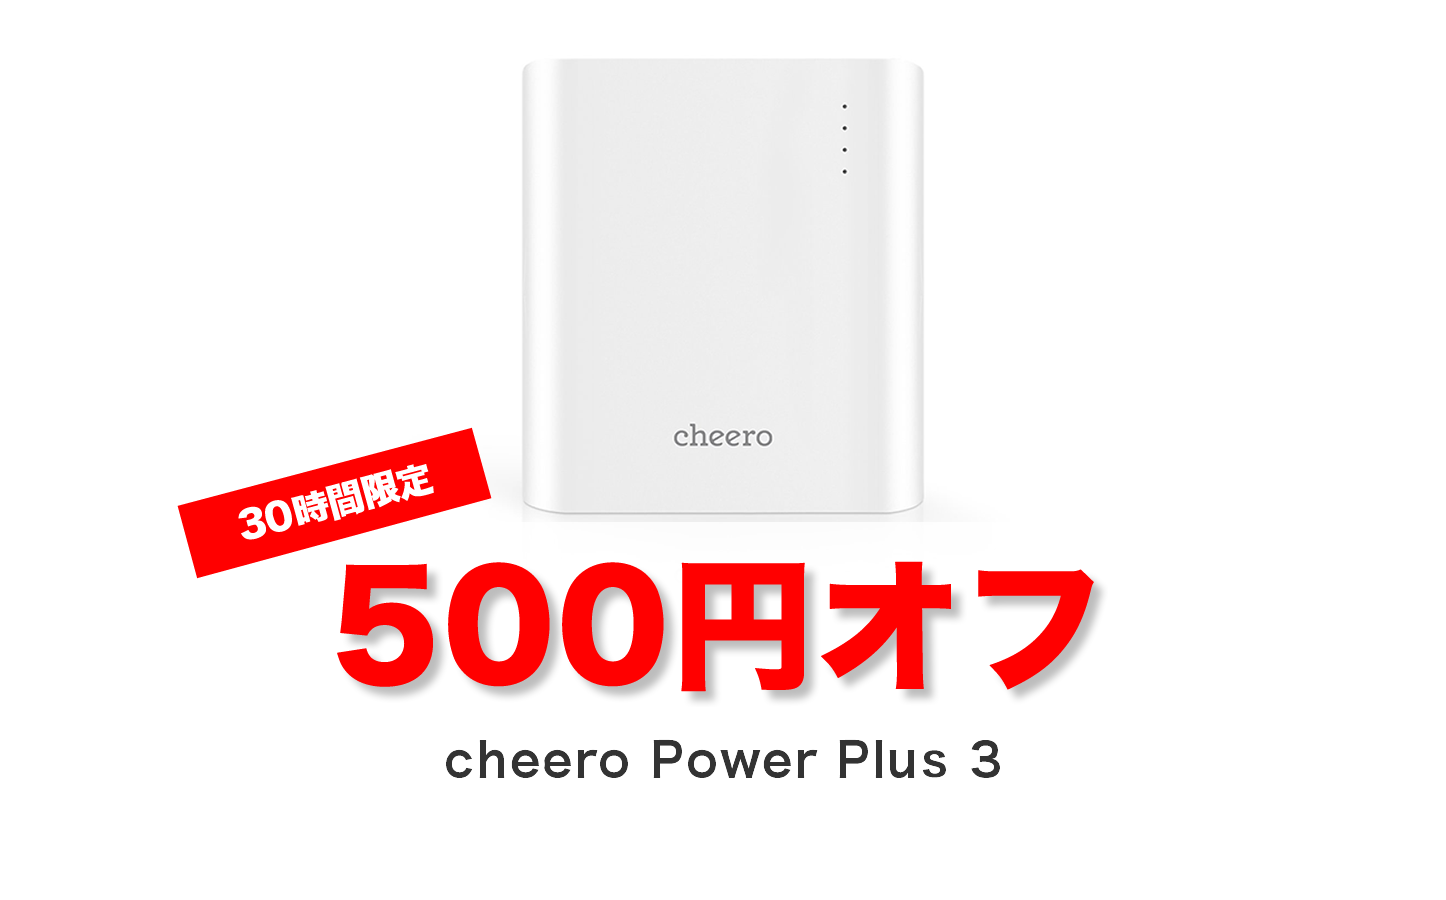 Cheero power plus 3 sale